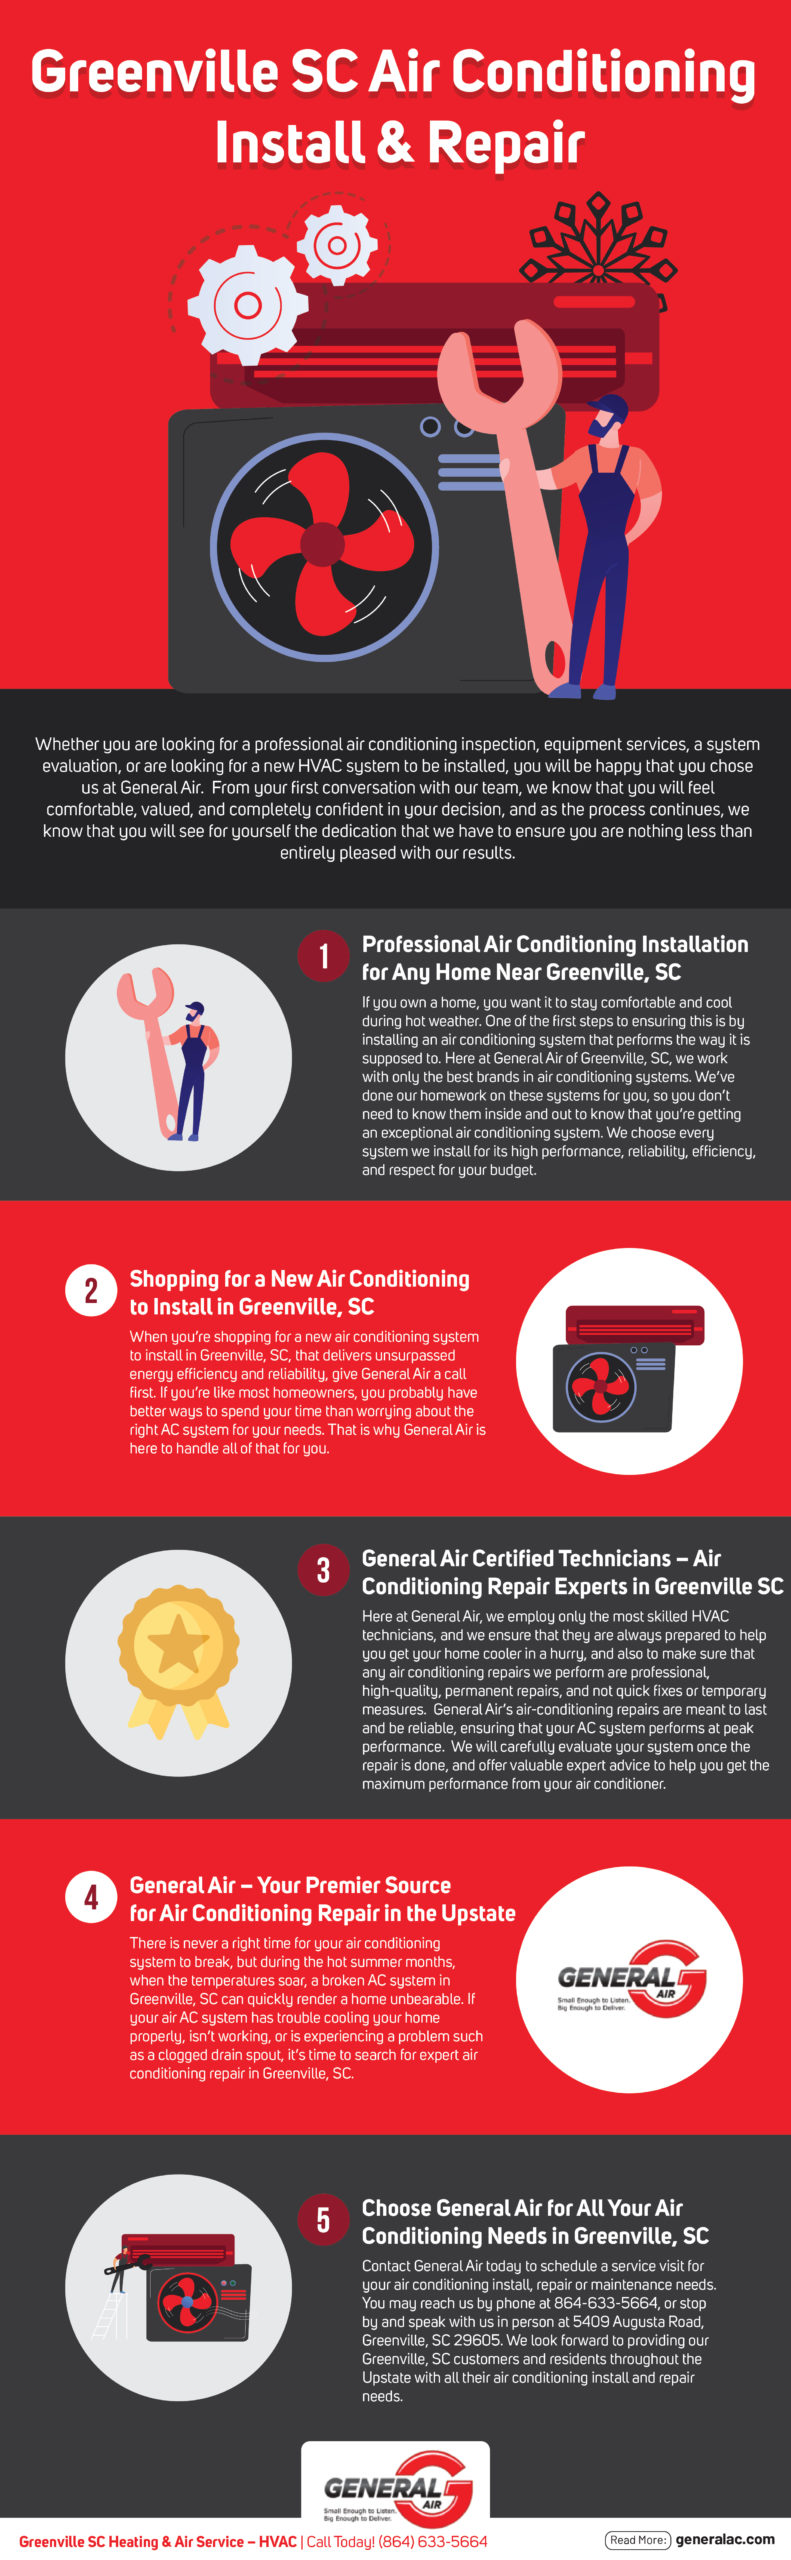 Greenville Air Conditioning Install And Repair Infographic